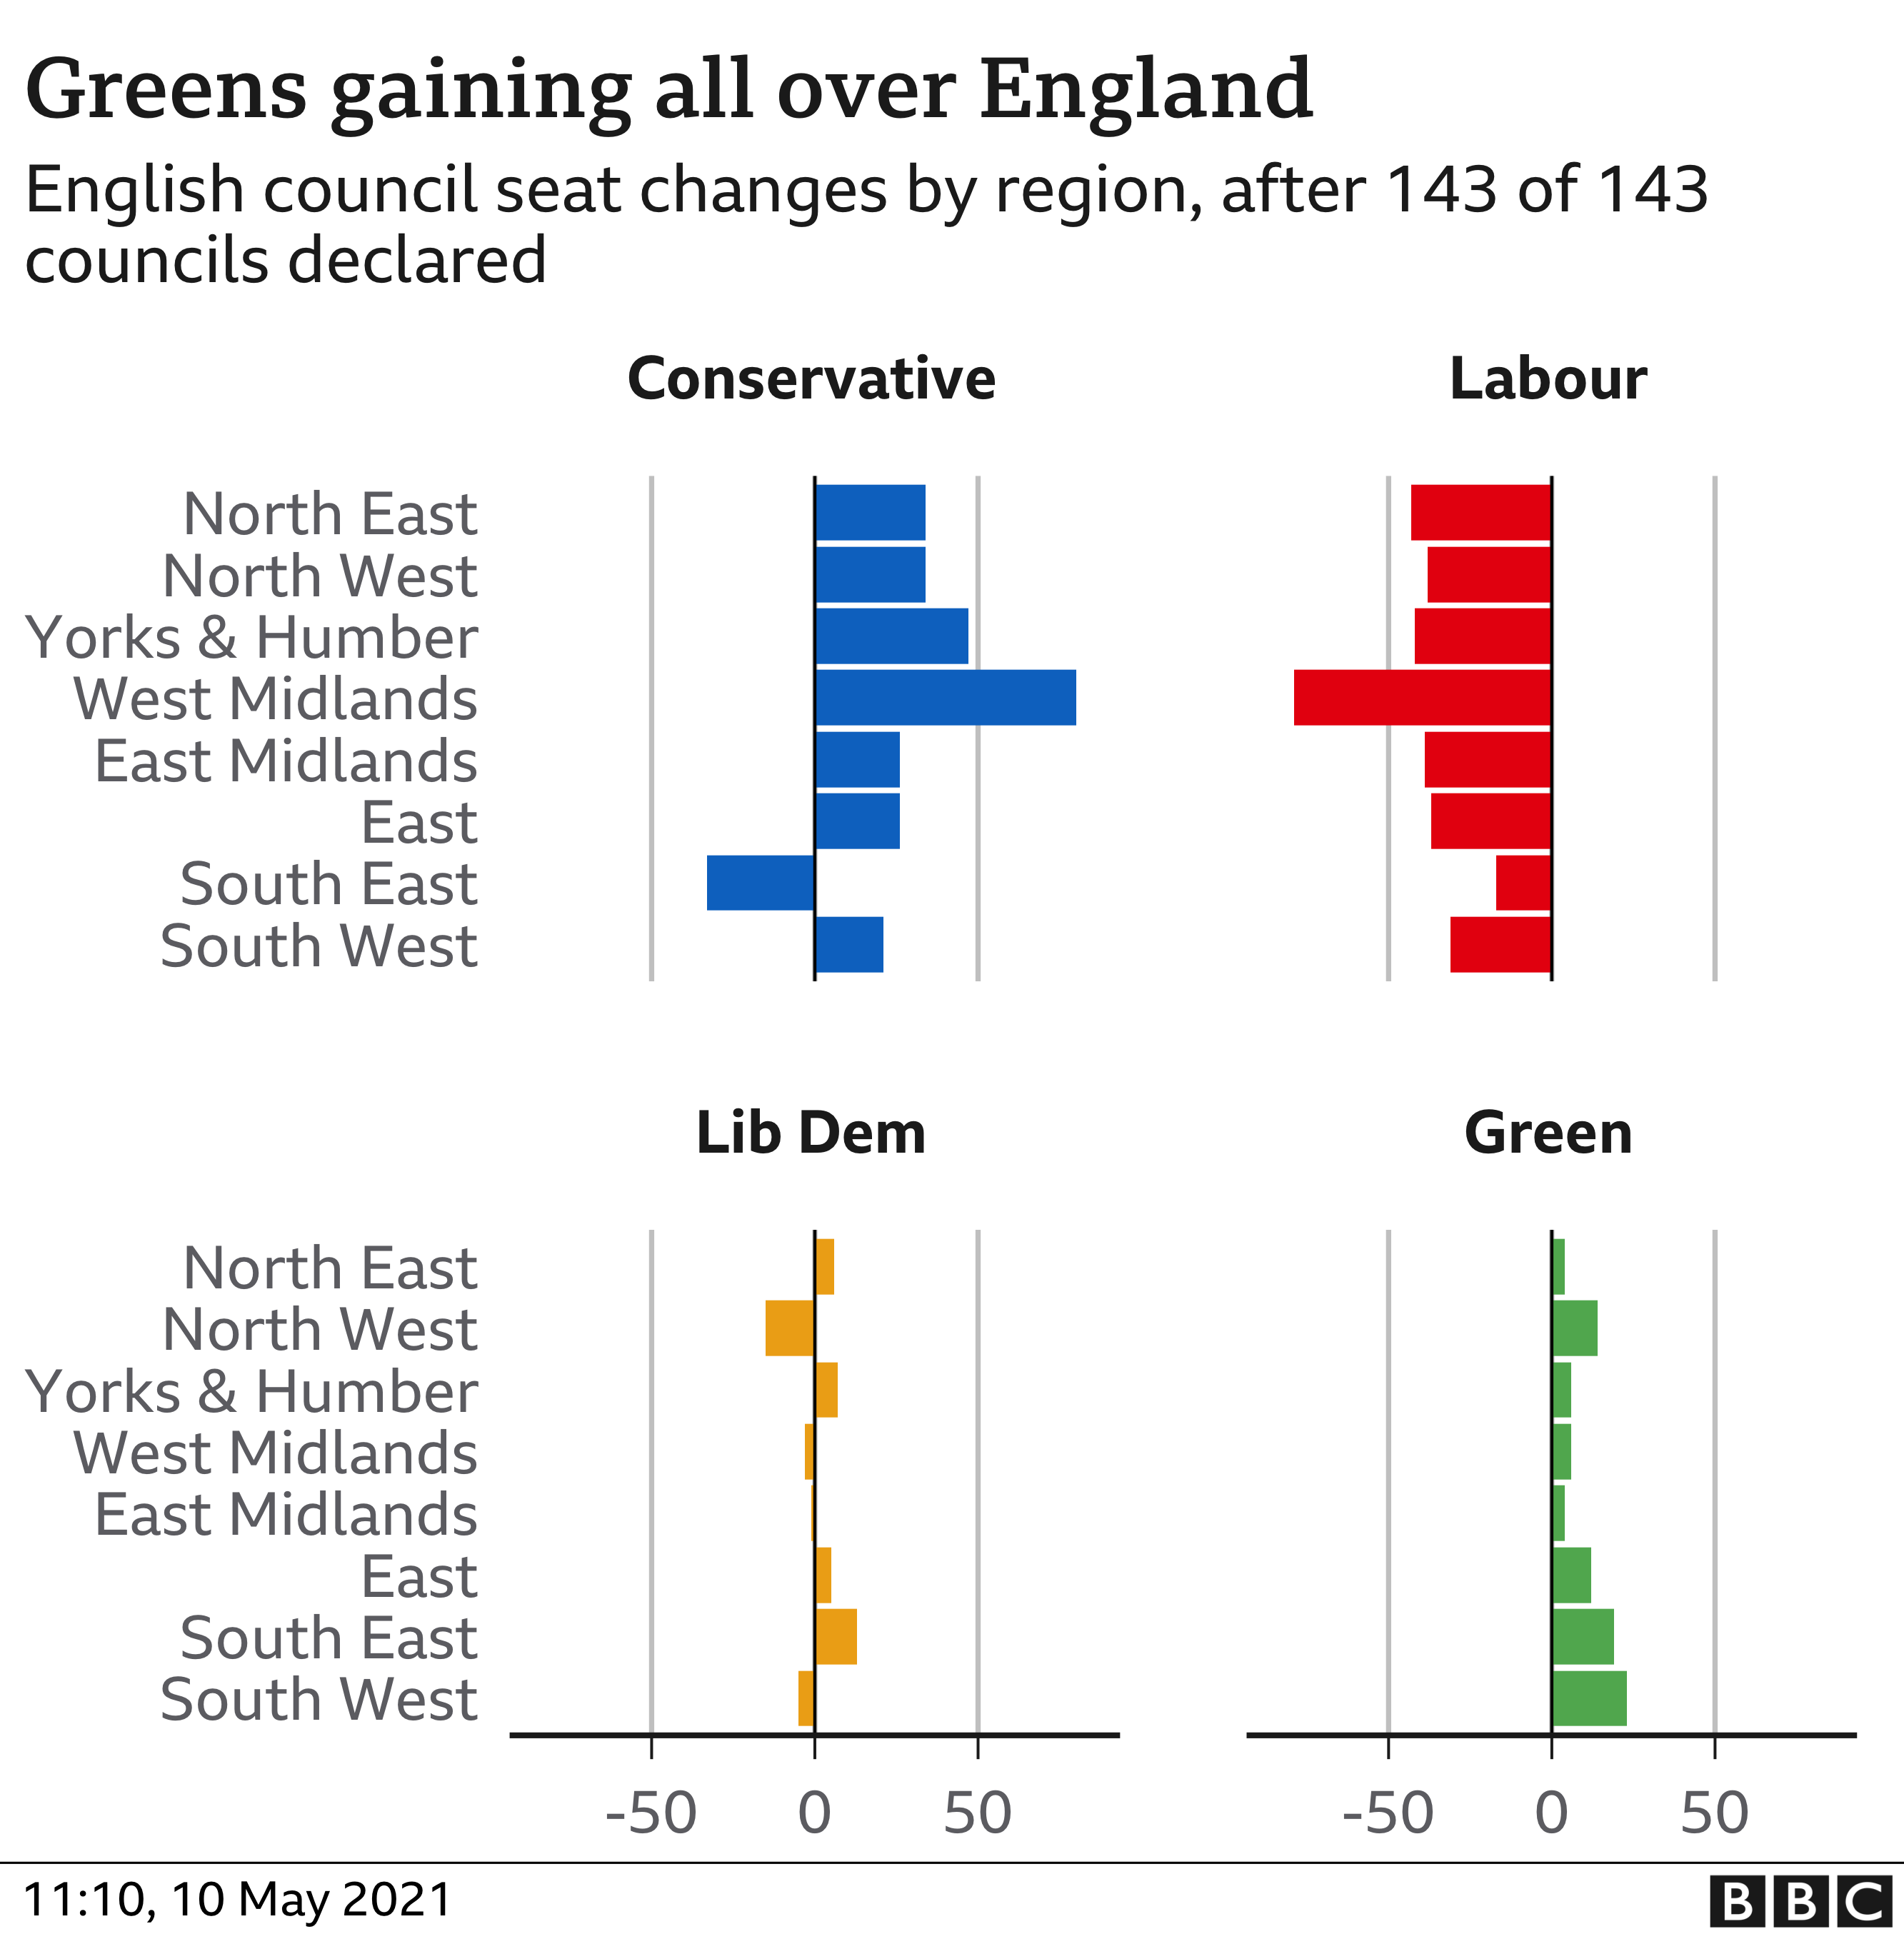 Council results by English region - the Greens have gained everywhere and Labour have lost everywhere. The Conservatives have gained everywhere other than the South East